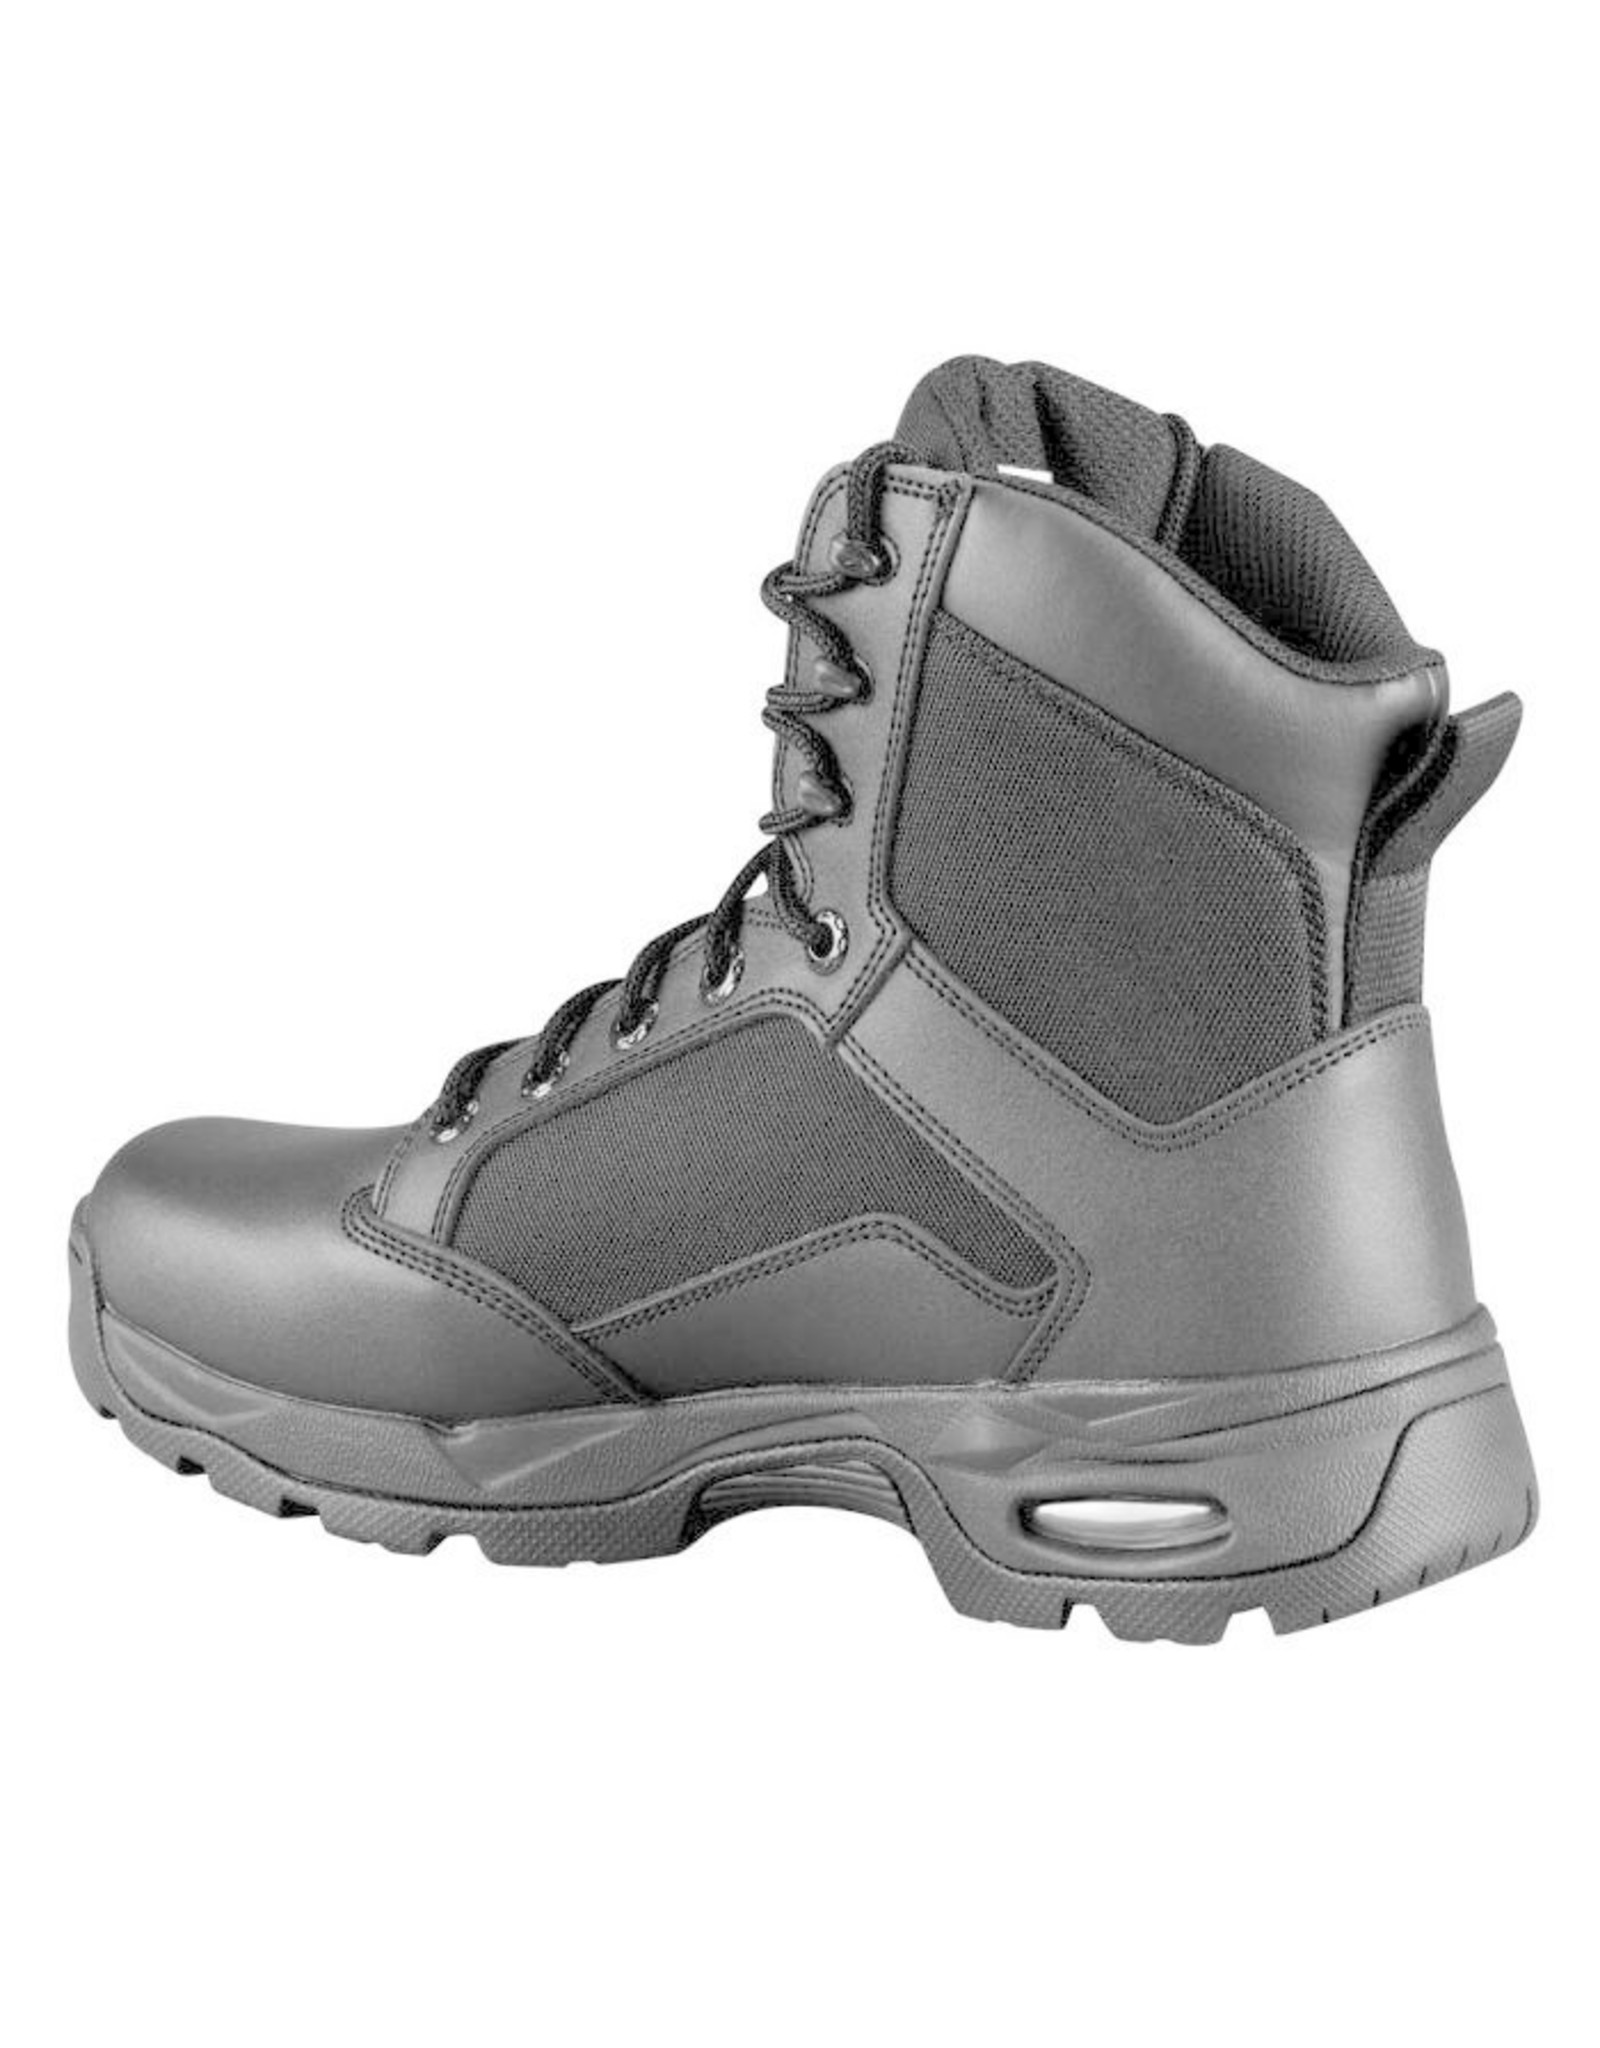 Propper Duralight Tactical Boot (Size 10.5 M)